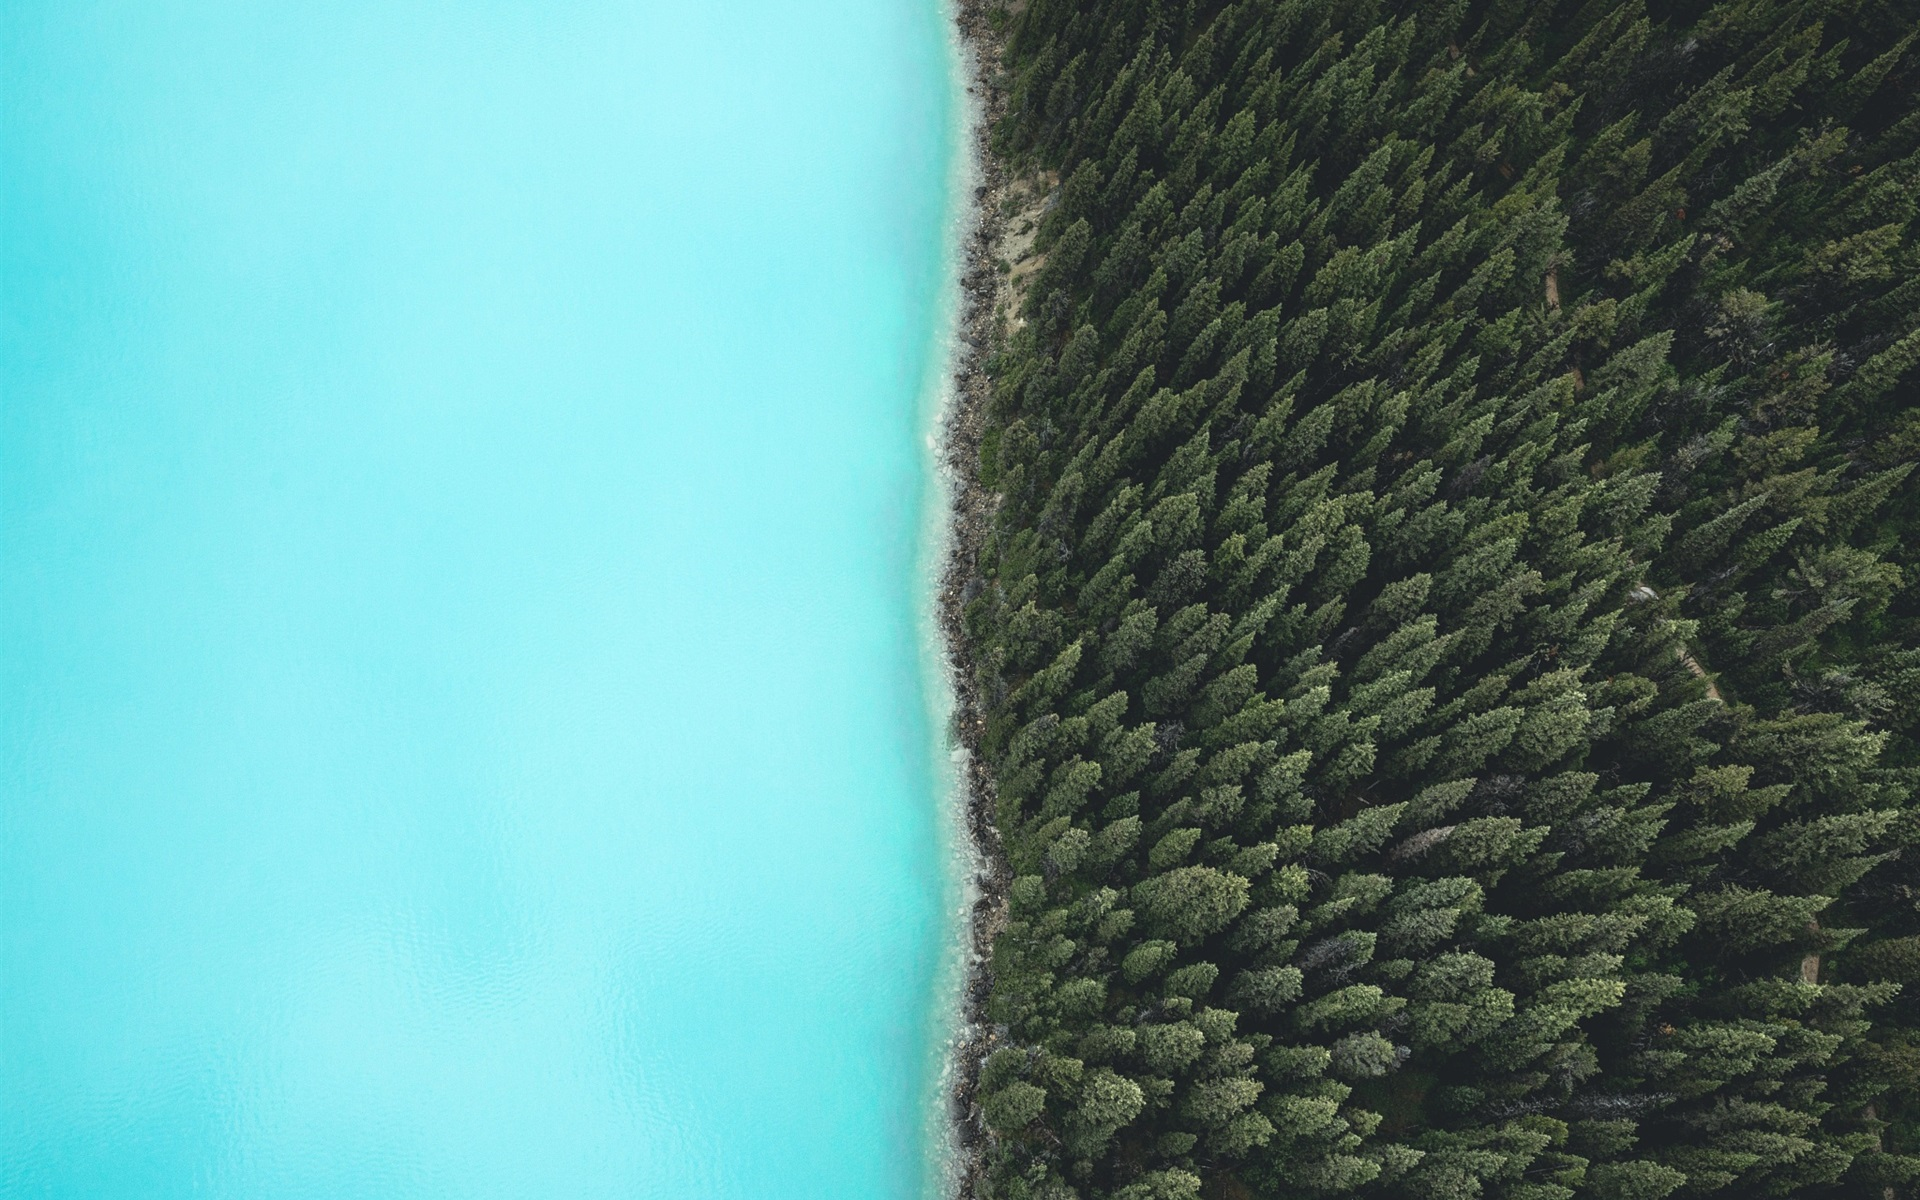 Cute Love Wallpaper Iphone 4s Wallpaper Forest Trees Lake Top View 1920x1200 Hd